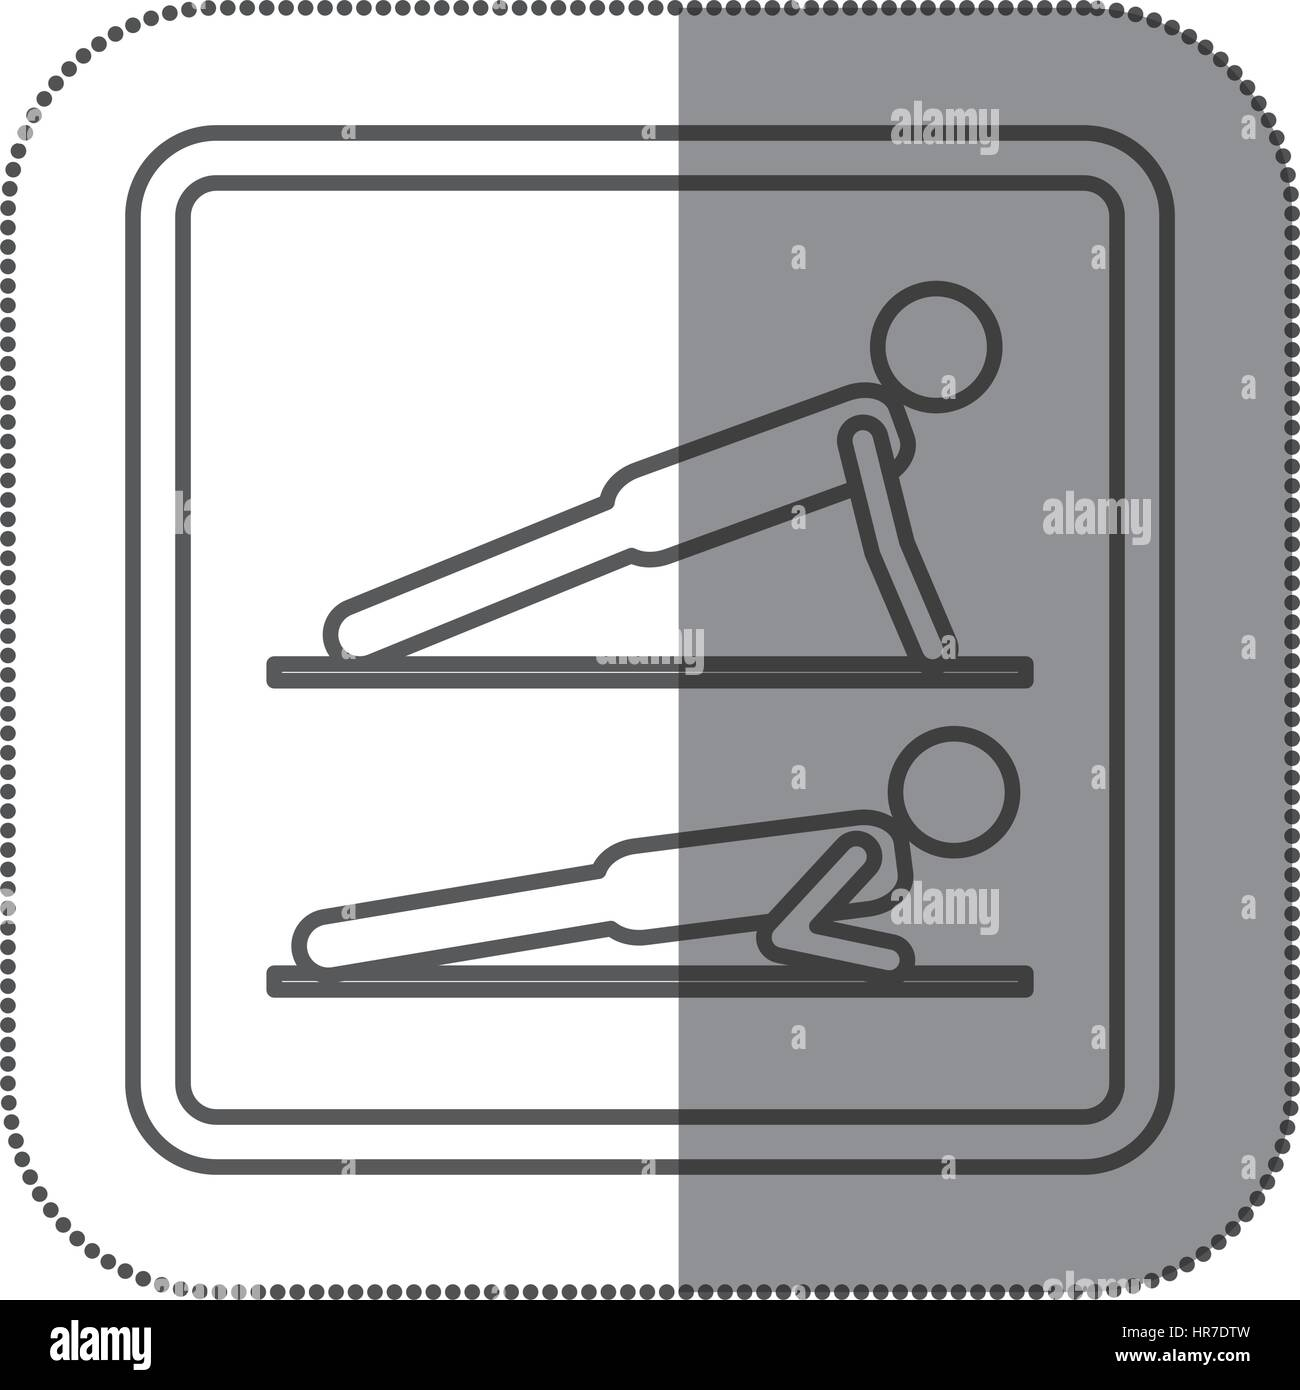 hight resolution of figure person doing planks icon